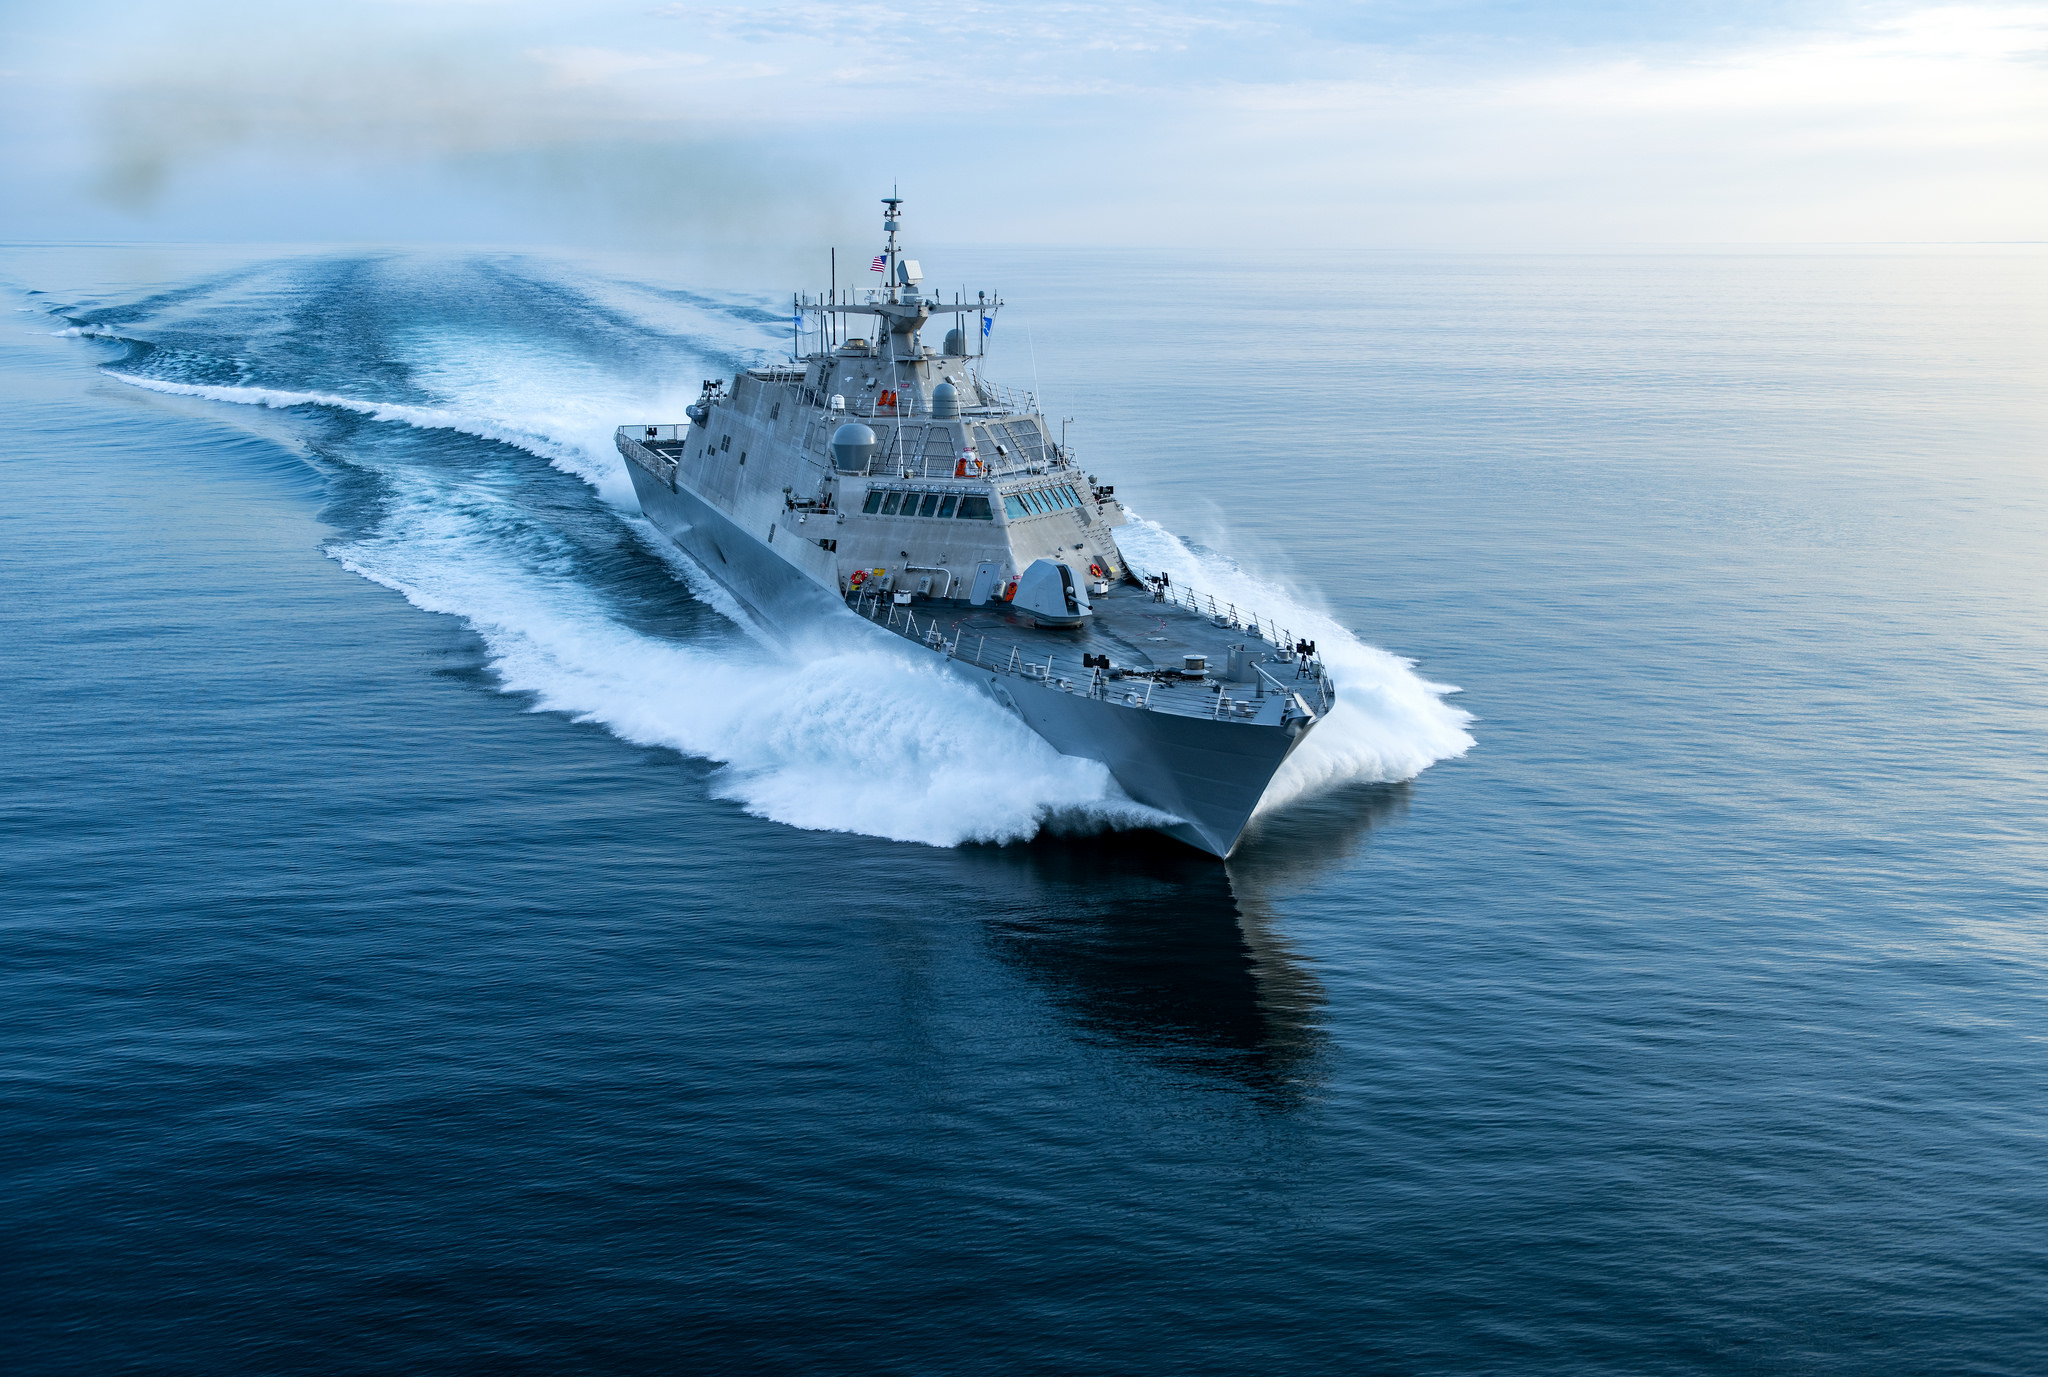 Fairbanks Morse Awarded $13.5 Million Contract to Service US Navy Vessels